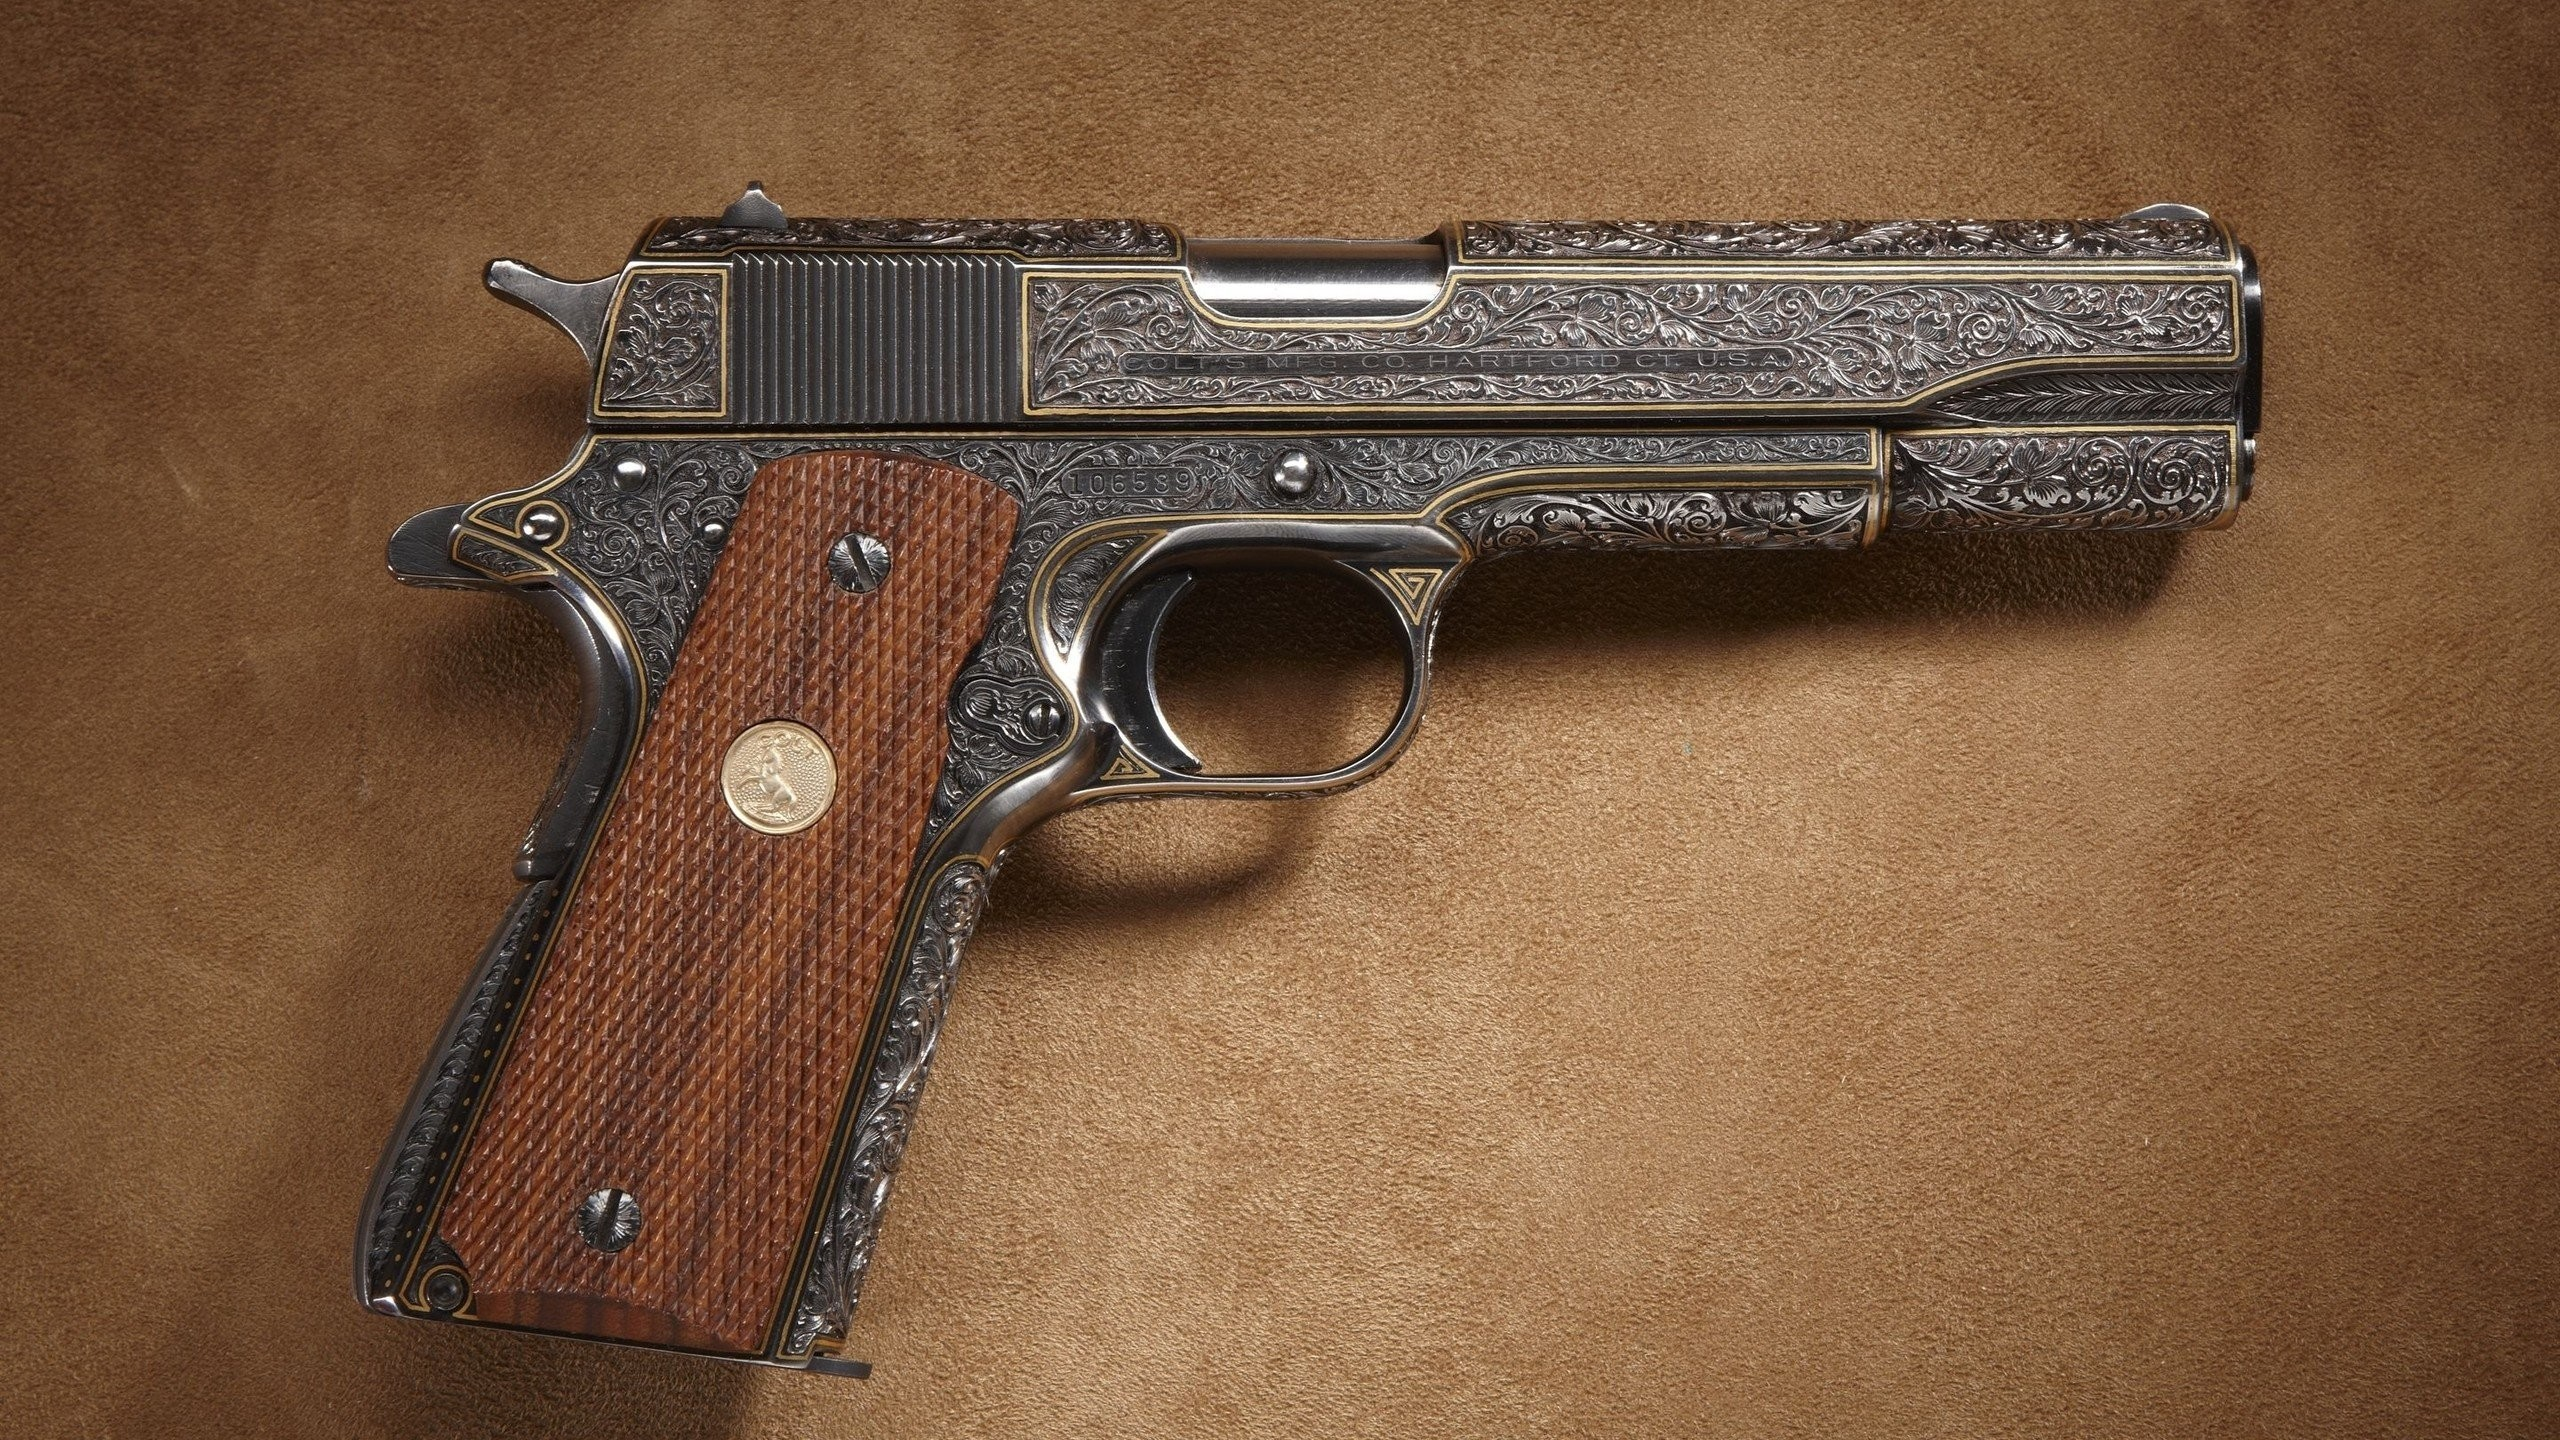 2560x1440 Weapons Guns Colt 1911 ...